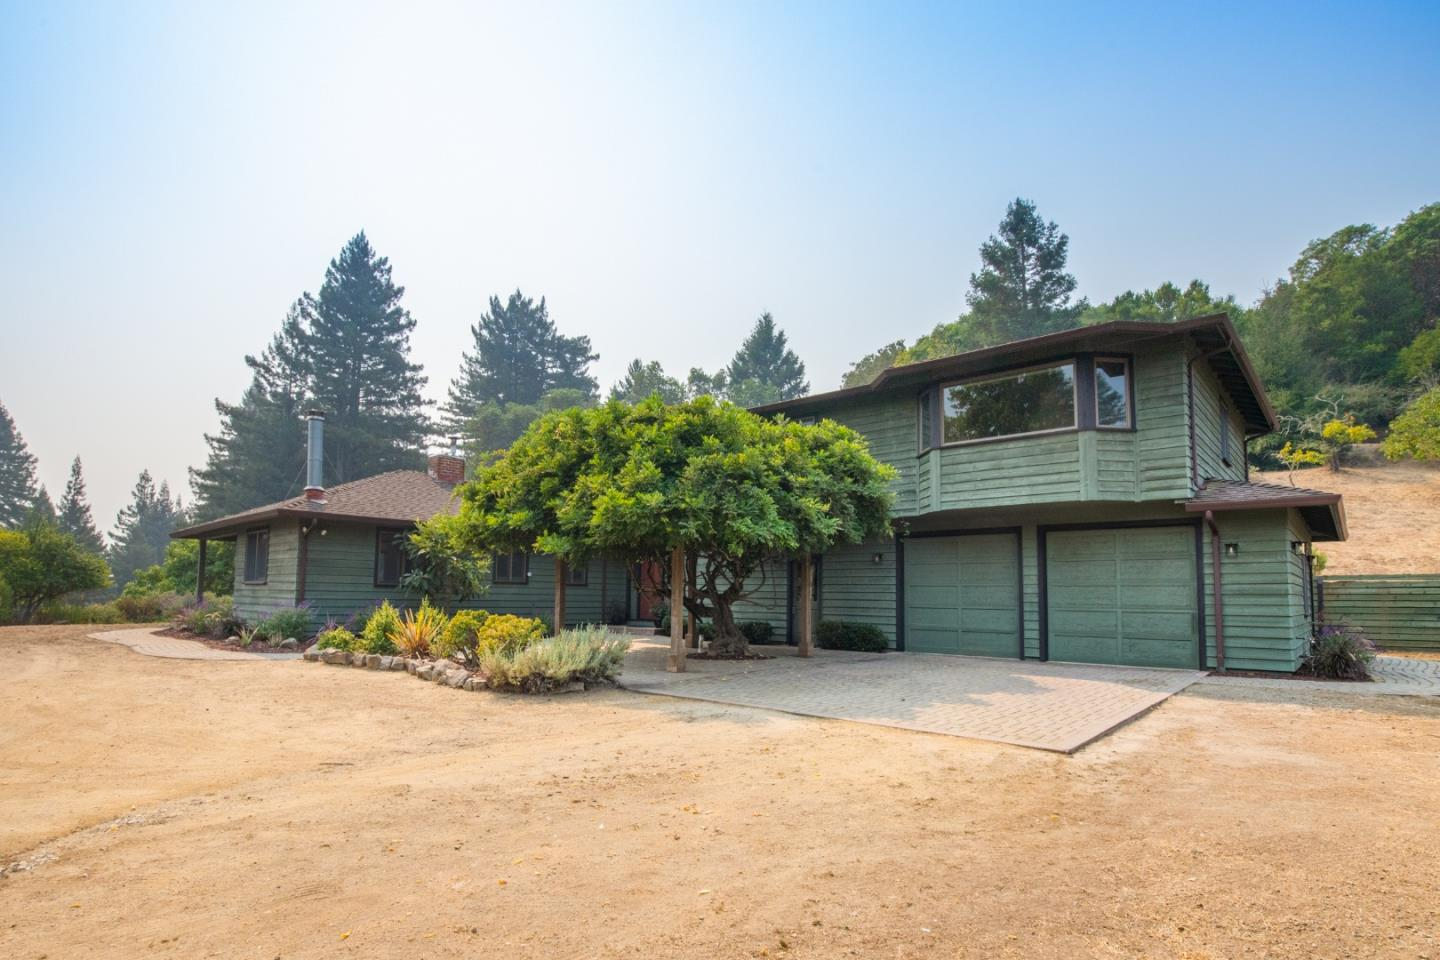 Here is your opportunity to own your very own piece of paradise in the Los Gatos Mountains. This home has been thoughtfully and beautifully upgraded. With new interior and exterior paint, gas cooktop, landscaping, upgrades to the well, exterior lighting and more! This home is sparkling. Nestled on over 6 acres with an abundance of avocado, persimmon, apple, pomegranate and Christmas trees, this land will not disappoint. The 5 bedroom 4 bath home has a large kitchen, formal dining area, bedroom and or office on the first floor and decks overlooking the sunny acreage. The house also has an oversized attached 2 car garage to hold all your toys and vehicles. With almost 2,900 sq ft you will have plenty of space to grow. The land possibilities are endless; farm, vineyards, pool or possible ADU? Great commuter location to both Silicon Valley and Santa Cruz. Come enjoy the best of mountain living at 25505 Soquel San Jose.